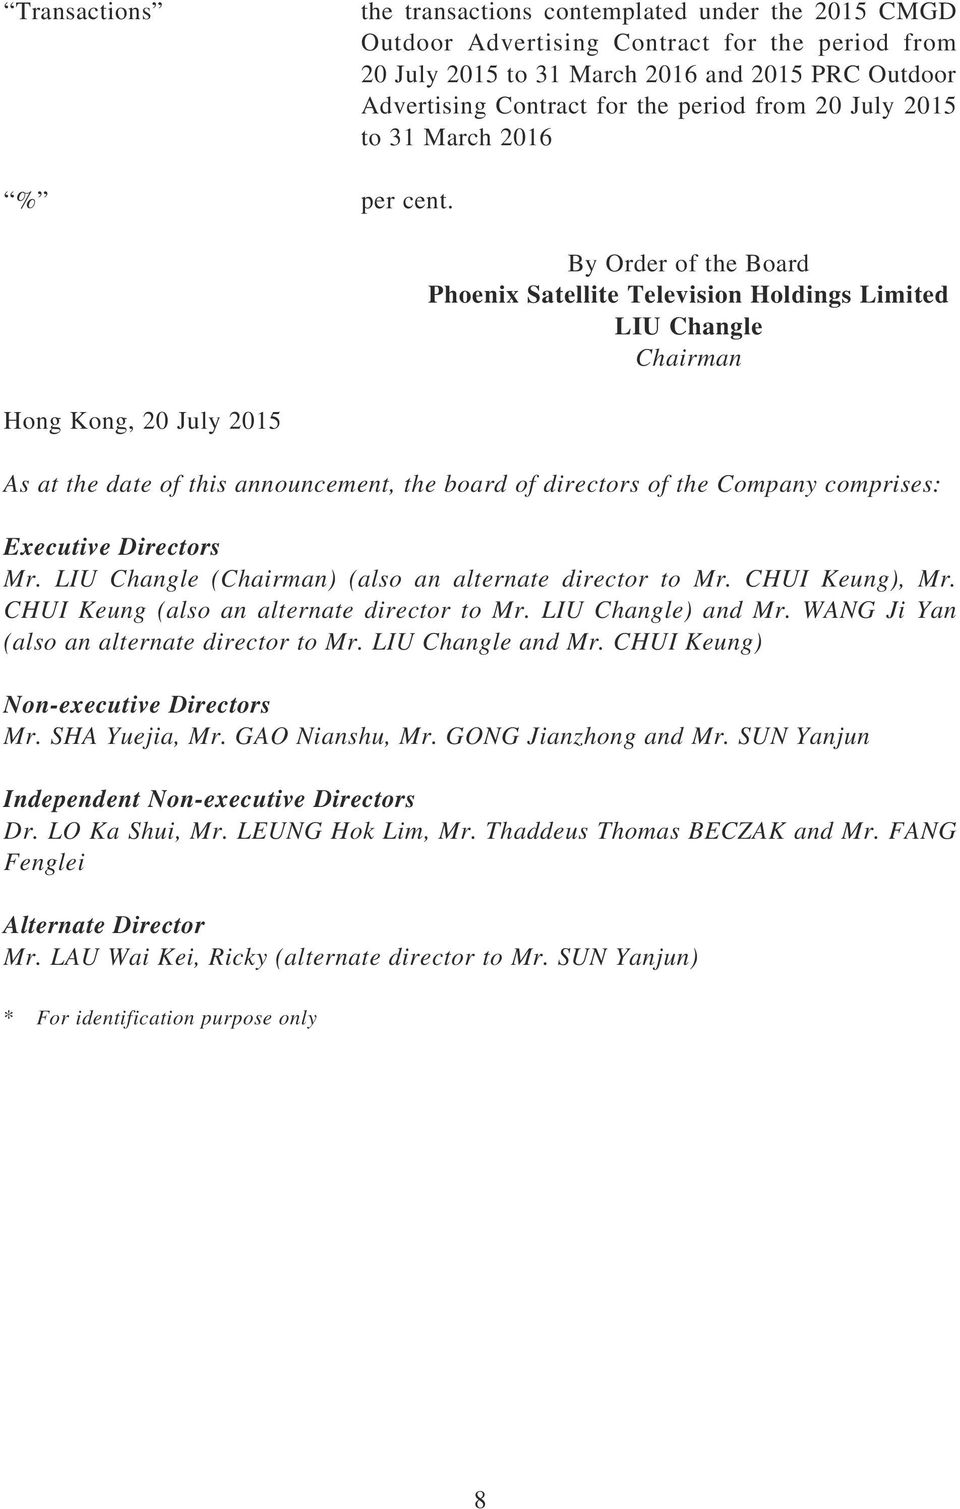 Hong Kong, 20 July 2015 By Order of the Board Phoenix Satellite Television Holdings Limited LIU Changle Chairman As at the date of this announcement, the board of directors of the Company comprises: